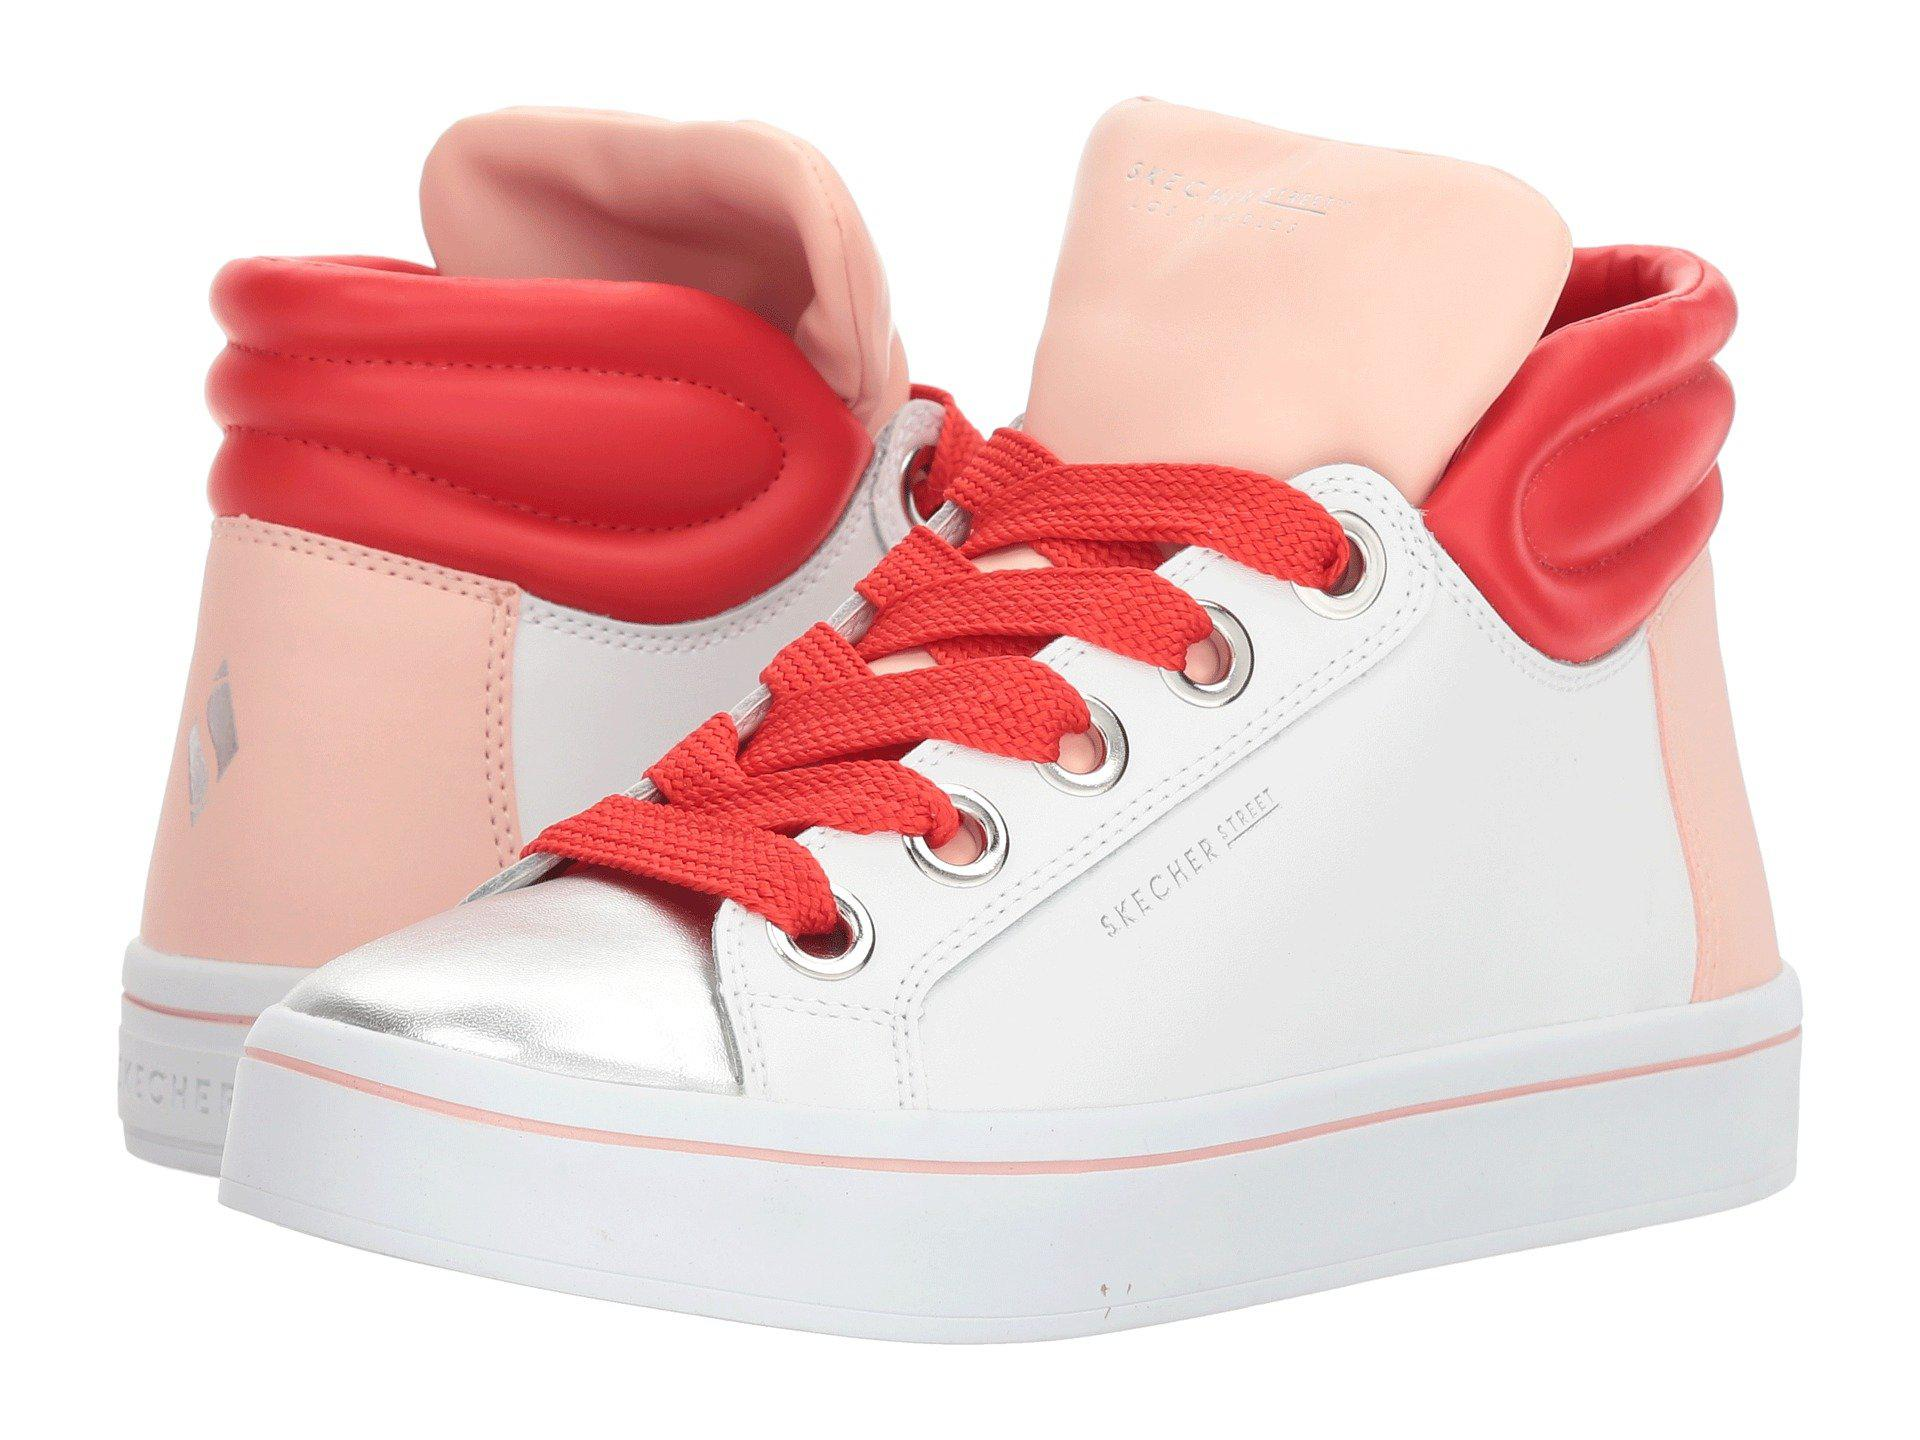 2014 new sale online sale online cheap Women's Hi-Lites - Block Poppers free shipping store order online pictures sale online 9MkJkP67Hg